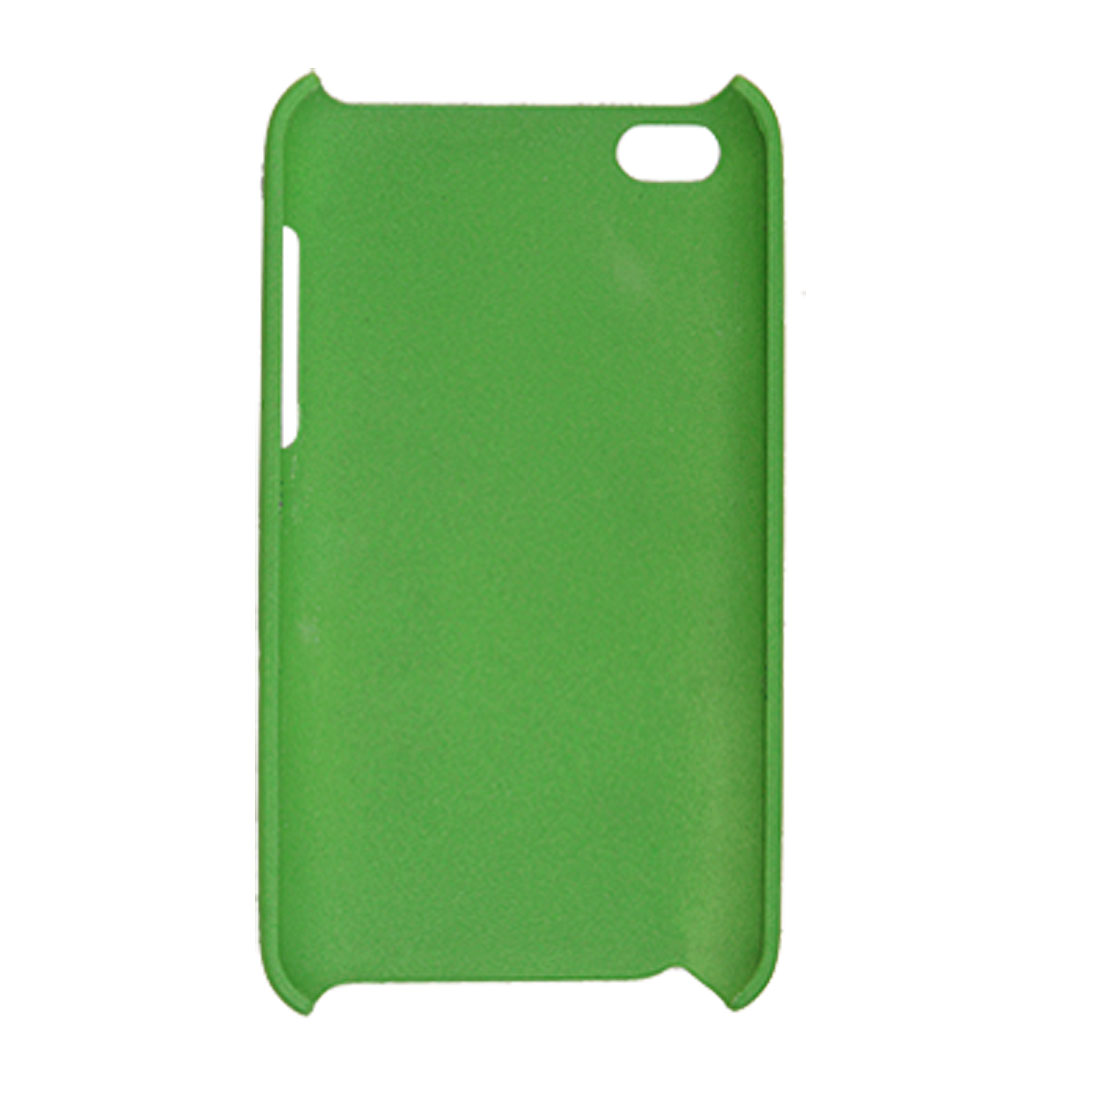 Rubberized Hard Plastic Back Green Cover Guard for iPod Touch 4